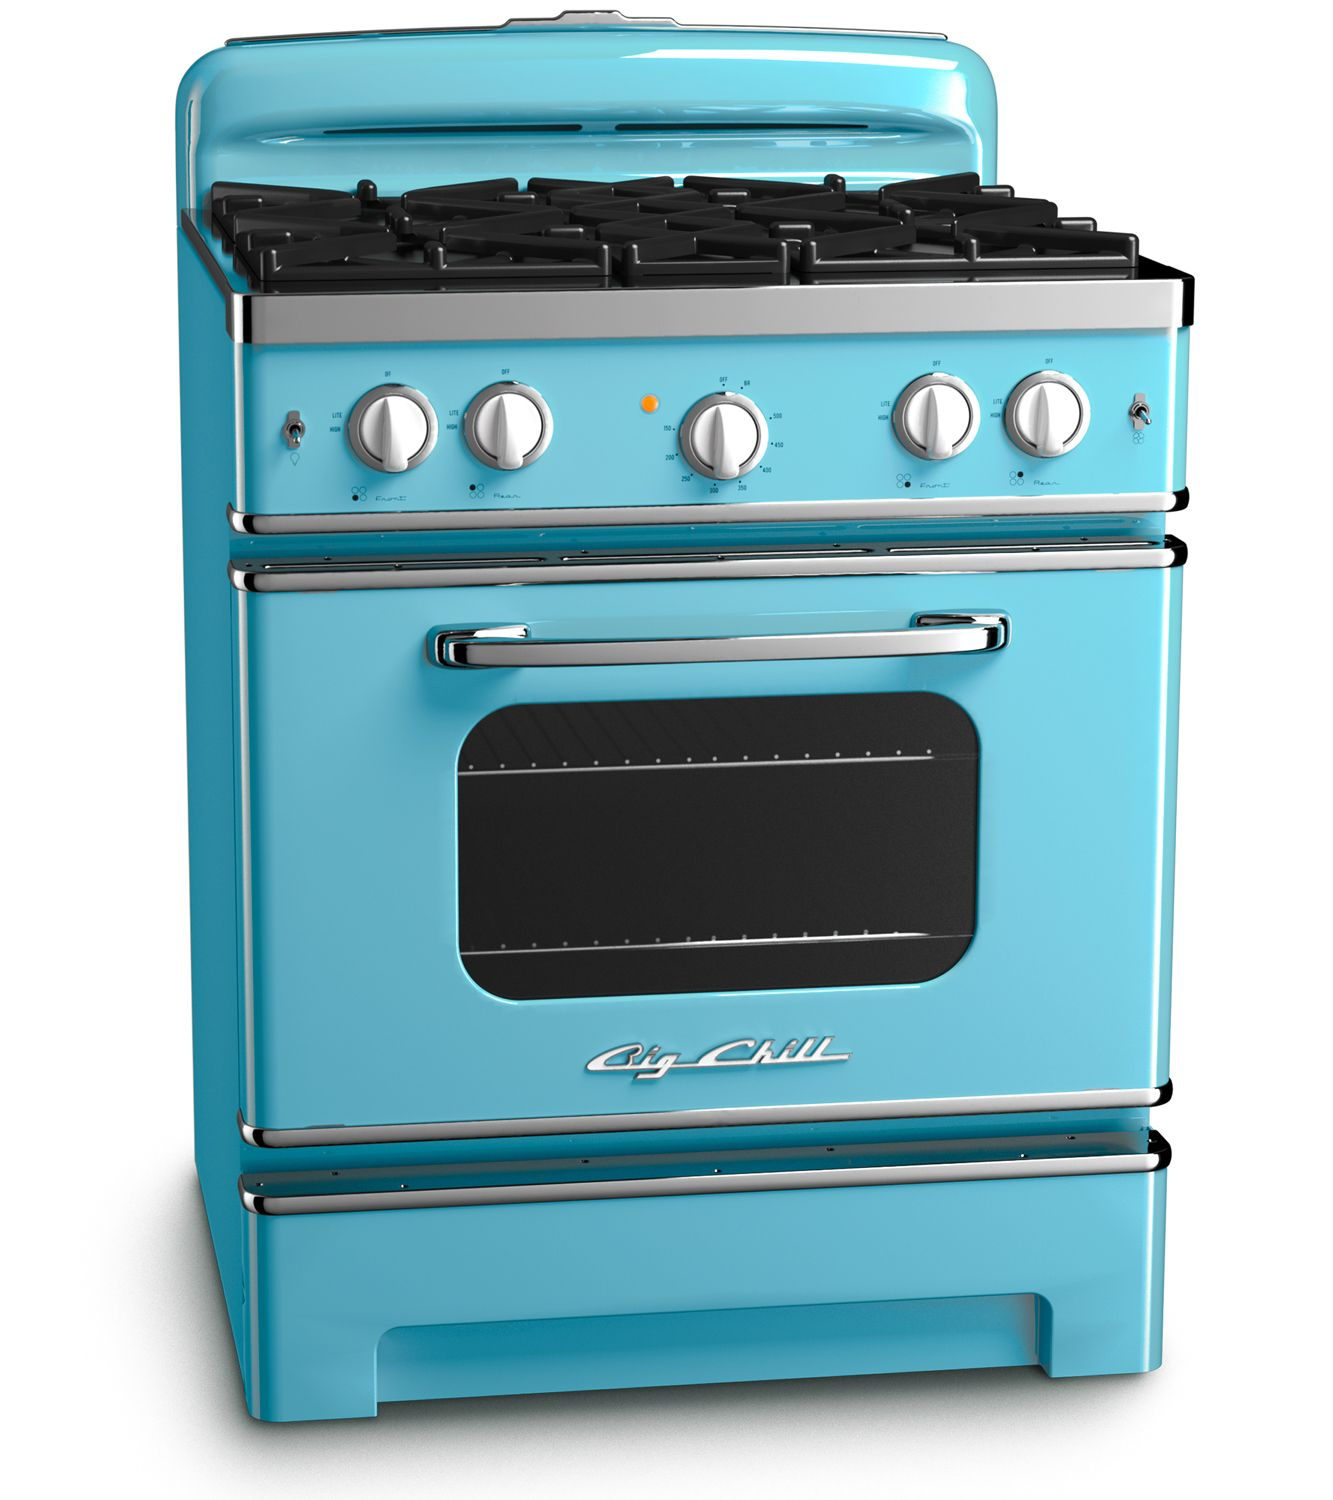 Beach Blue Retro Stove by Big Chill. I would love this range ...